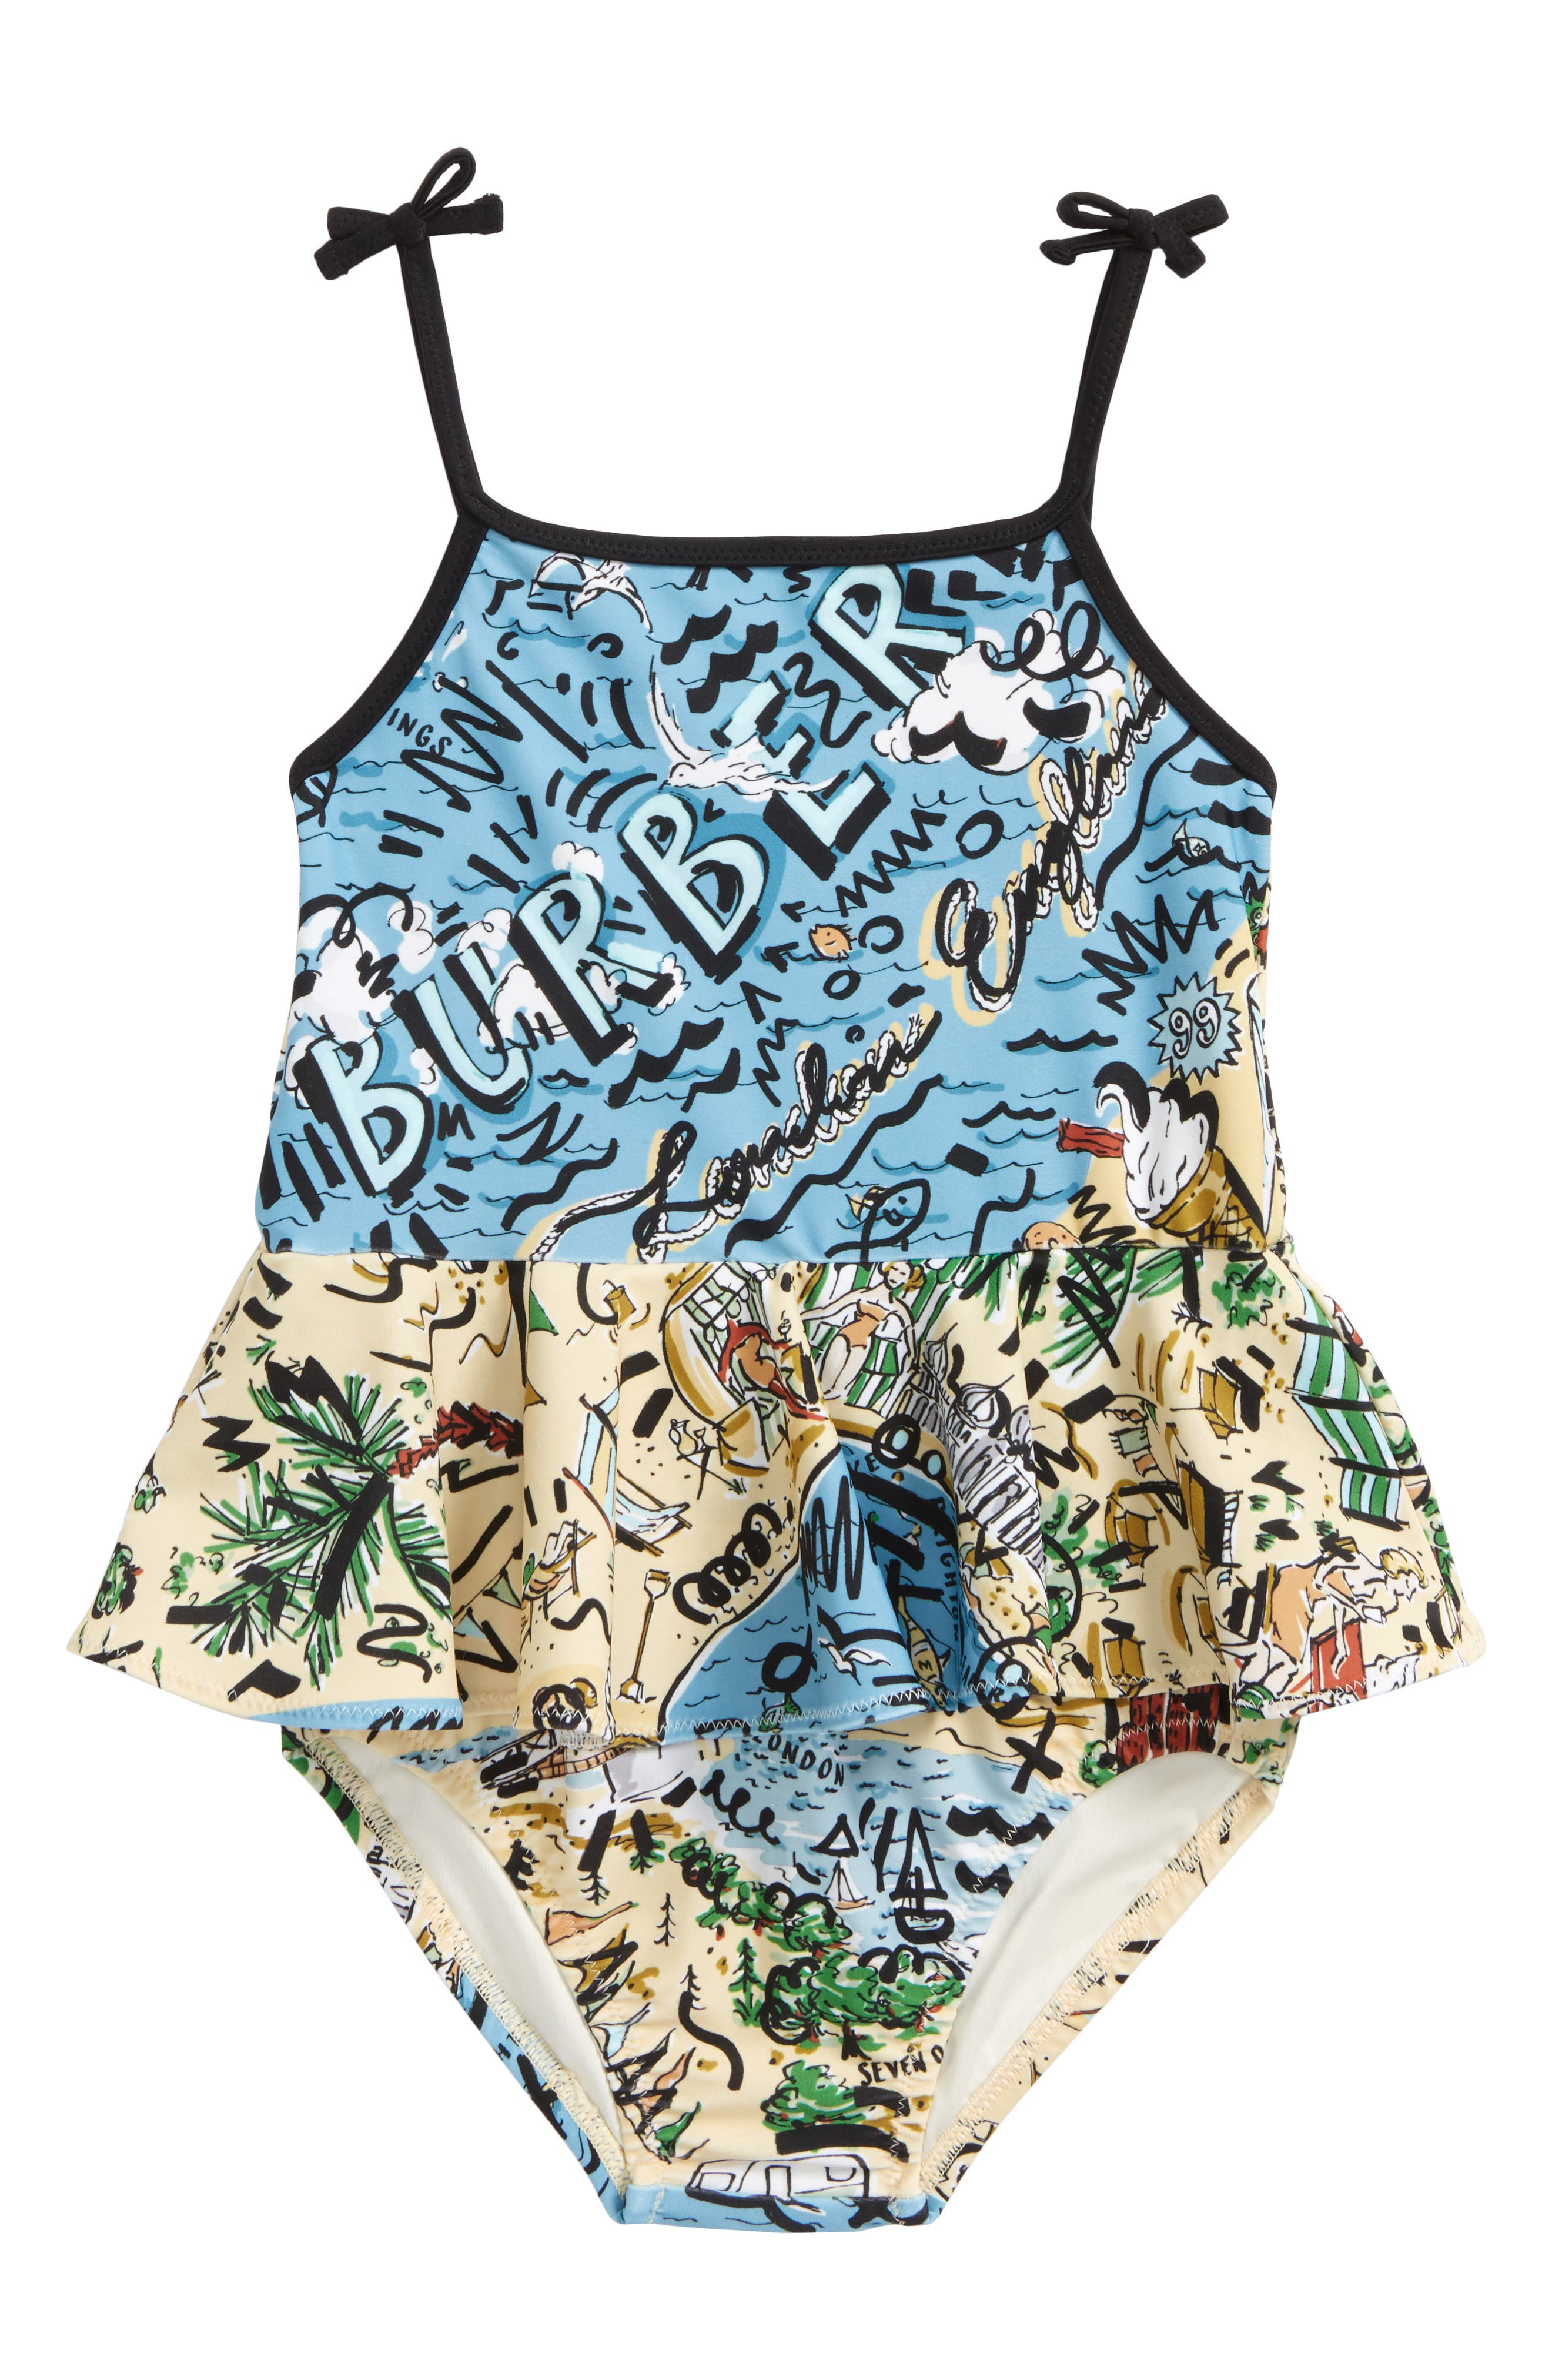 Luella Skirted One-Piece Swimsuit,                             Main thumbnail 1, color,                             250